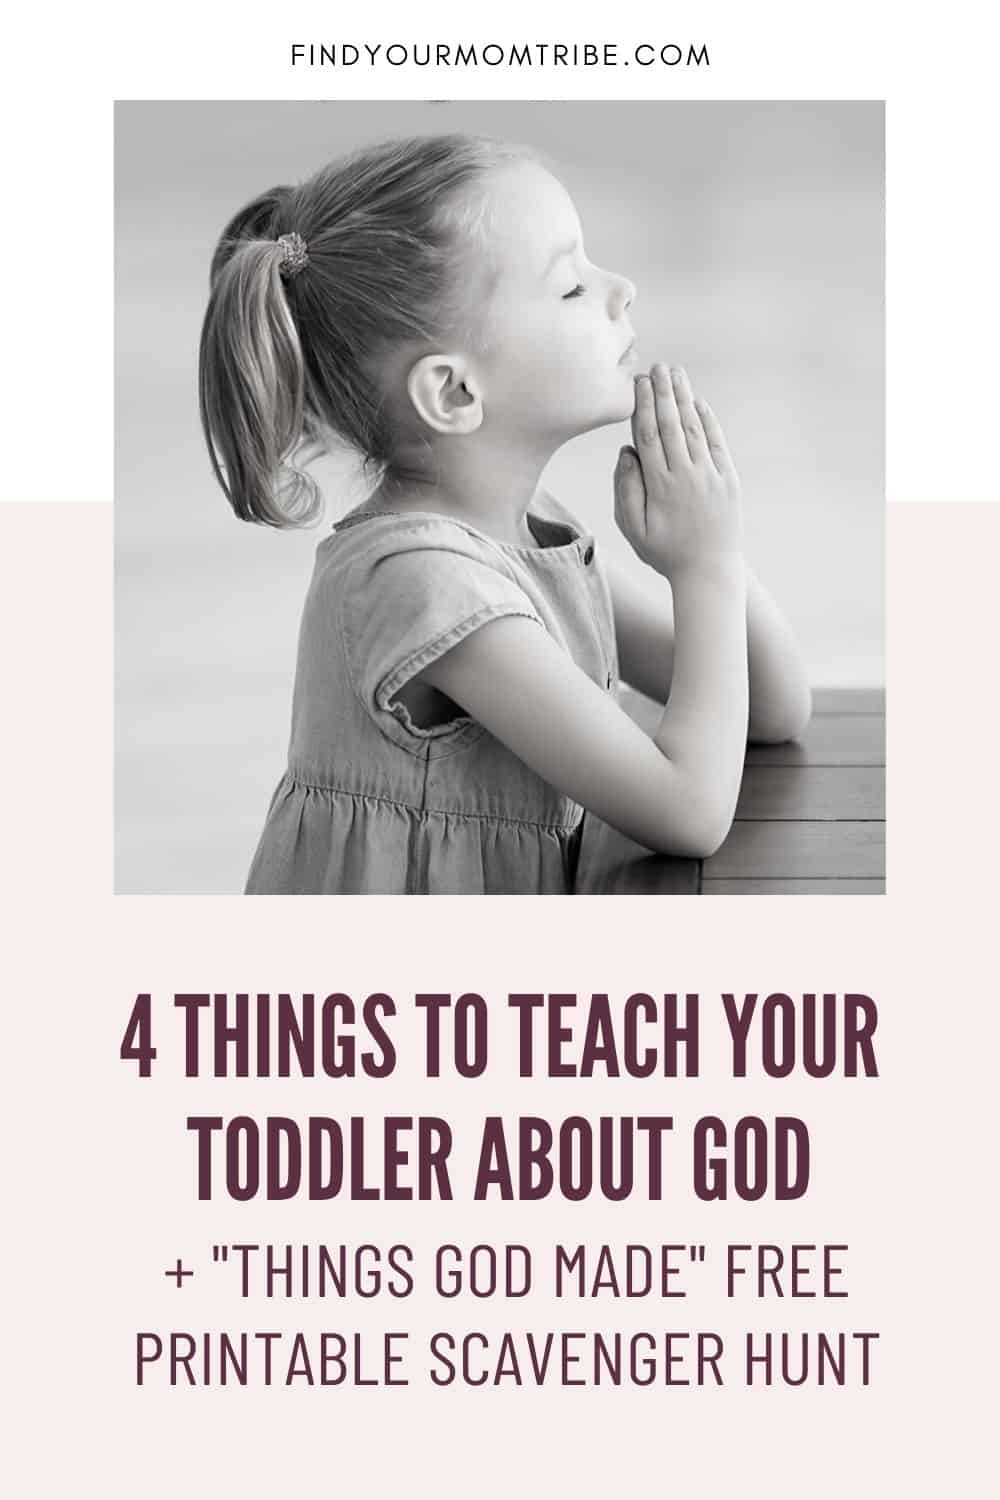 4 Things to Teach your Toddler about God Pinterest